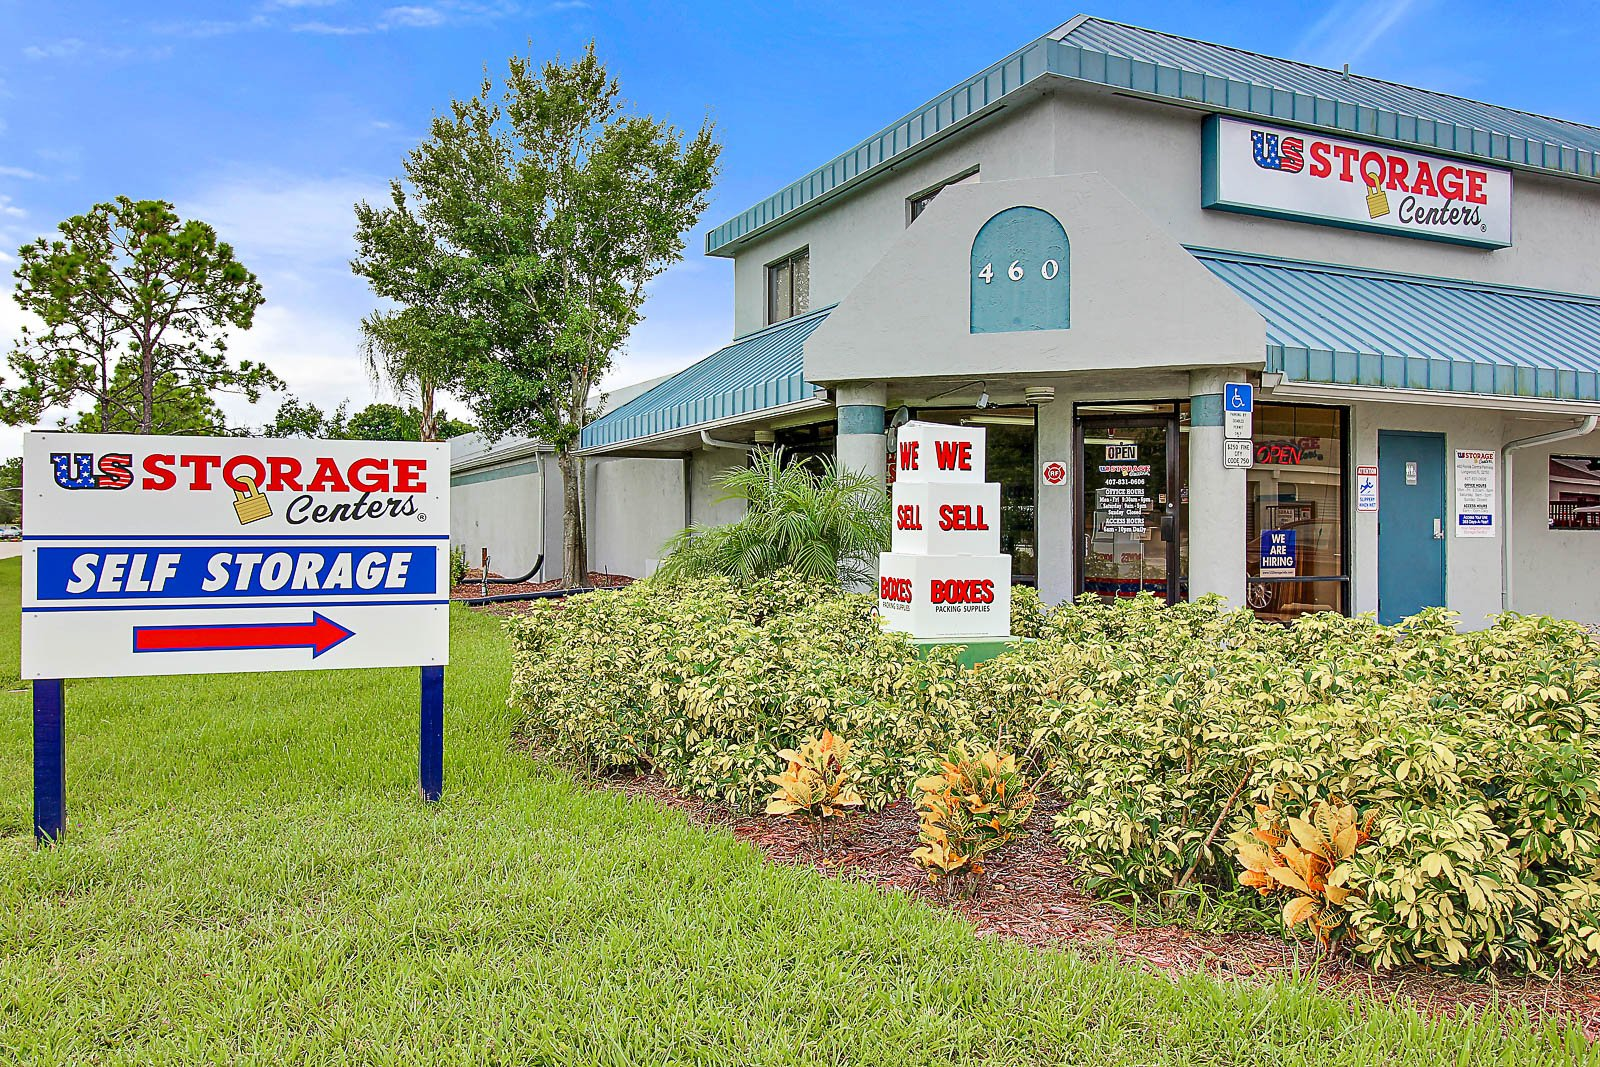 Self Storage Facility in Longwood, FL - image 1